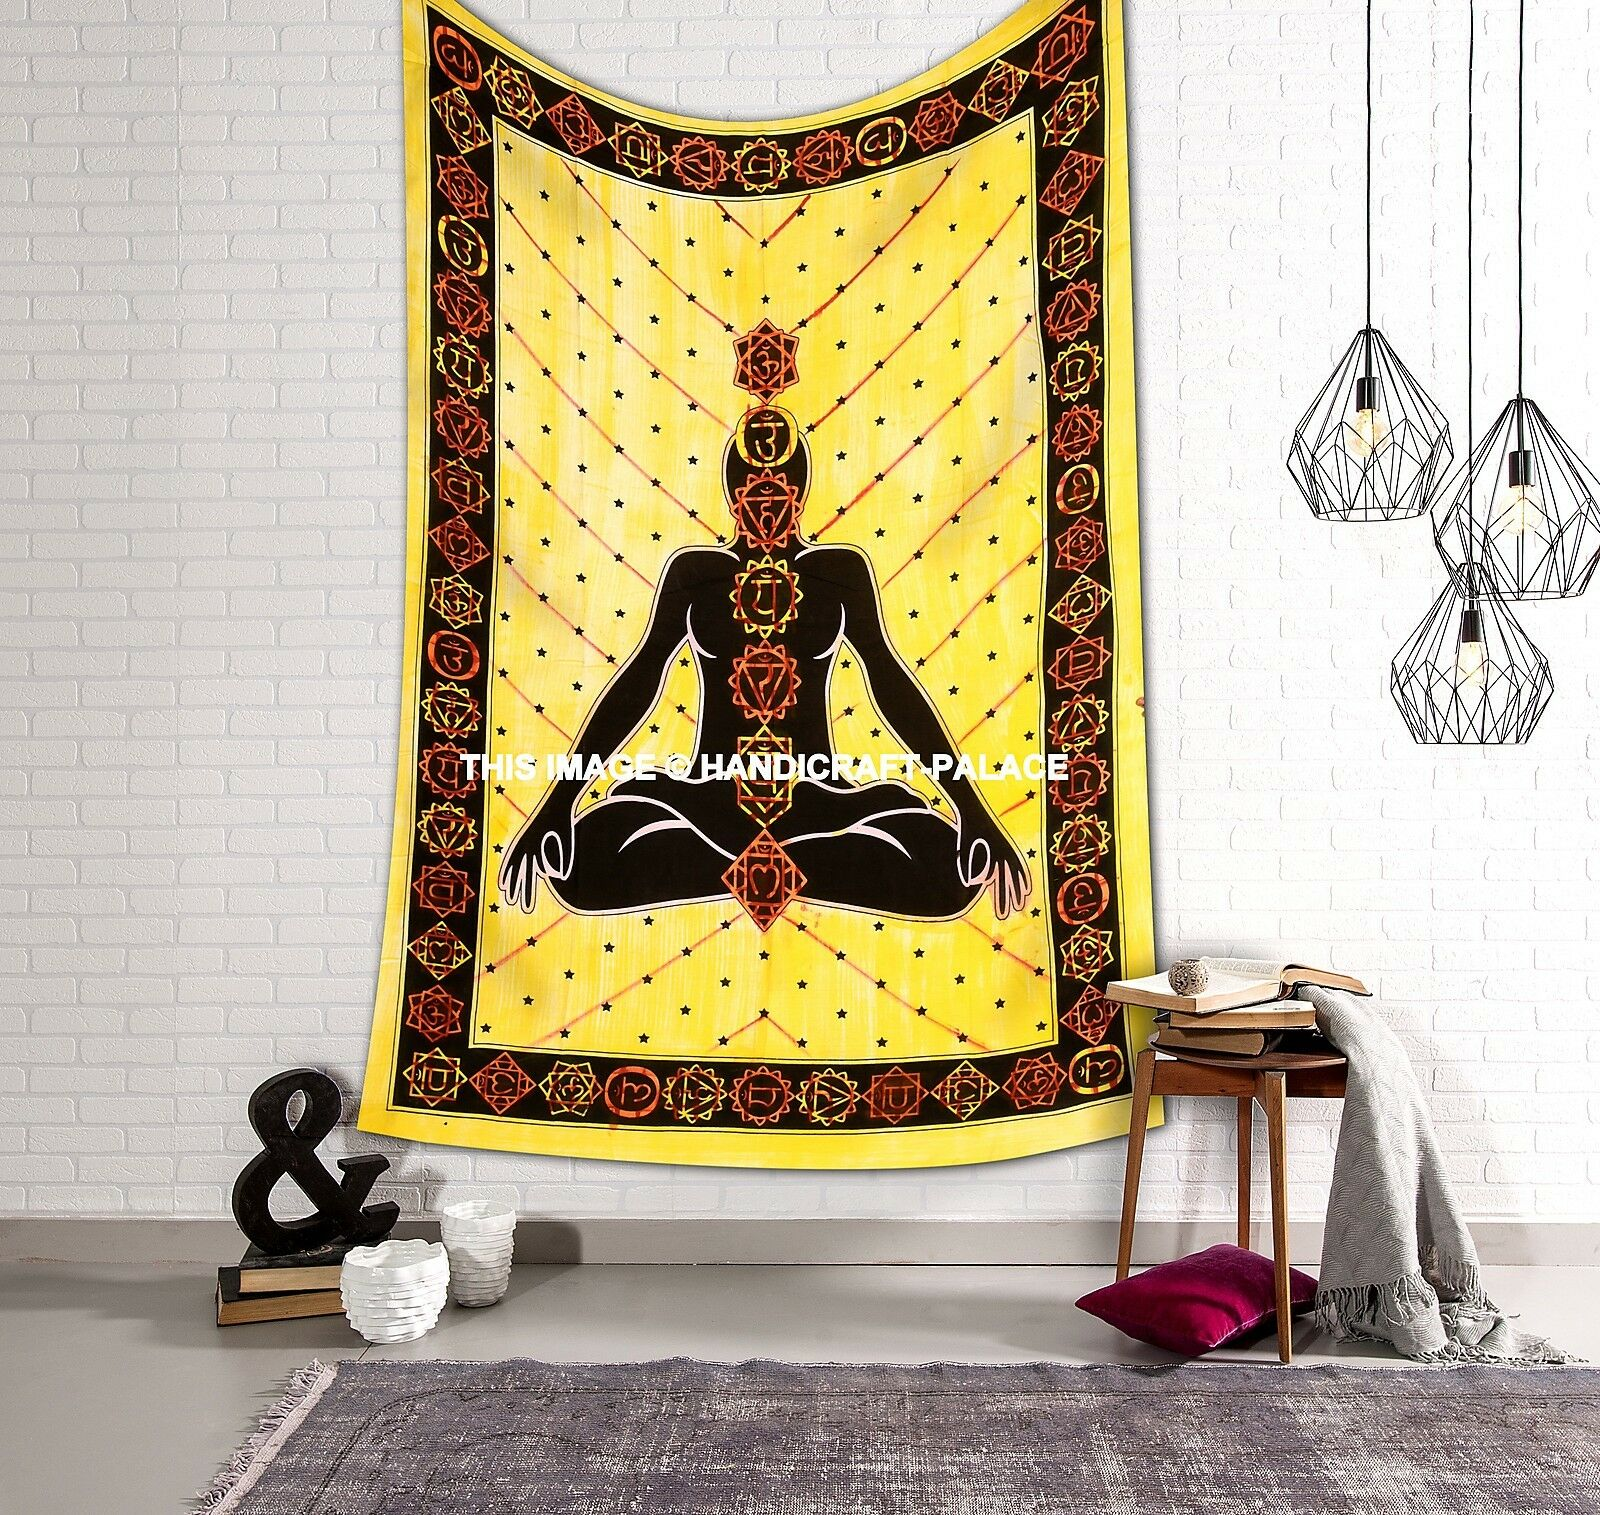 7 CHAKRA TAPESTRY Hippie Psychedelic Wall-Hanging Yoga Meditation ...